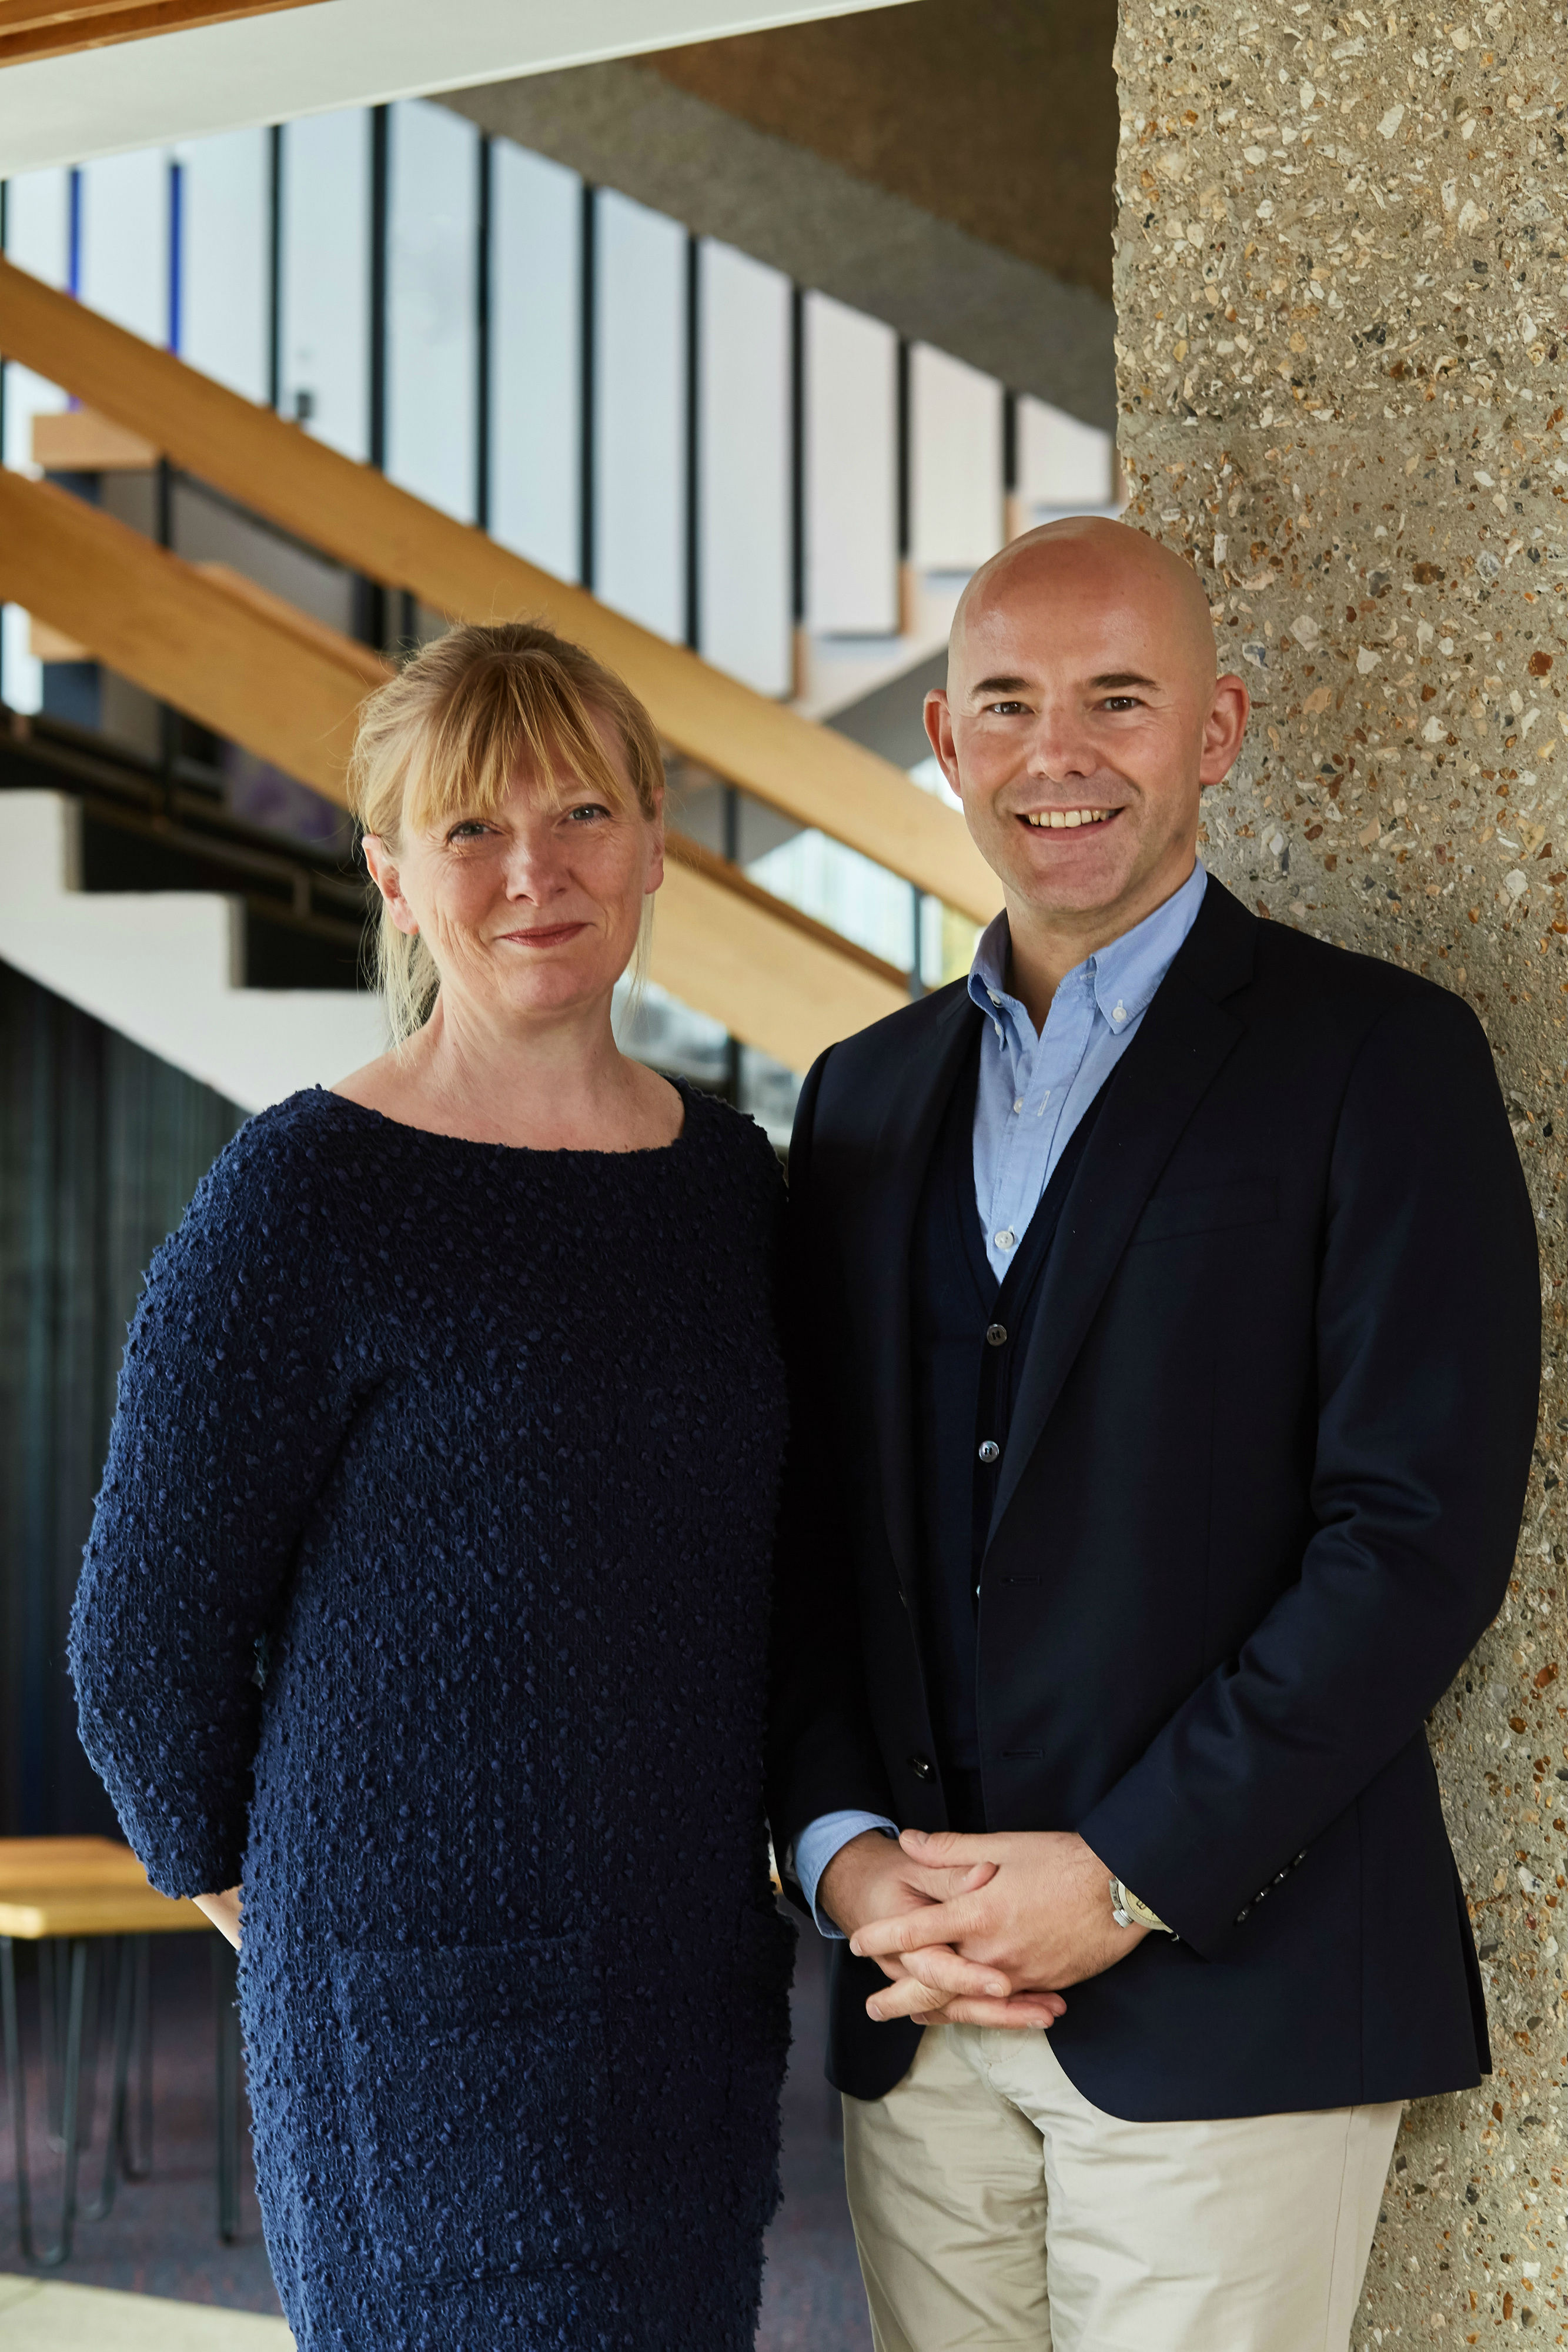 1. Chichester Festival Theatre's Executive Director Rachel Tackley and Artistic Director Daniel Evans. Photo by Tobias Key. IMG_5706